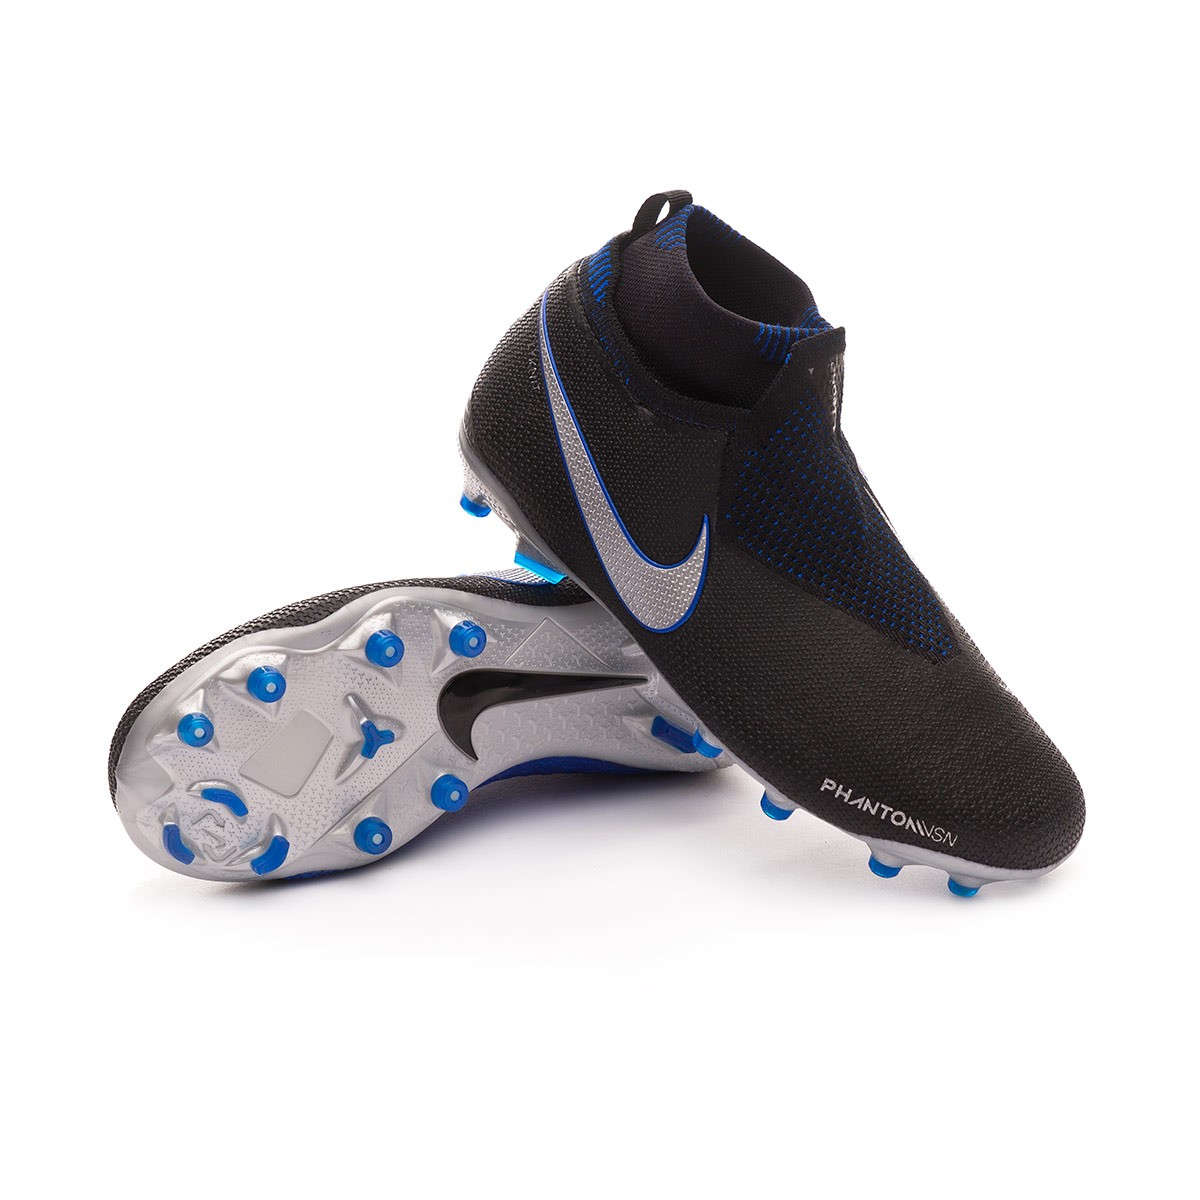 132ace1f218 Football Boots Nike Kids Phantom Vision Elite DF FG MG Black ...